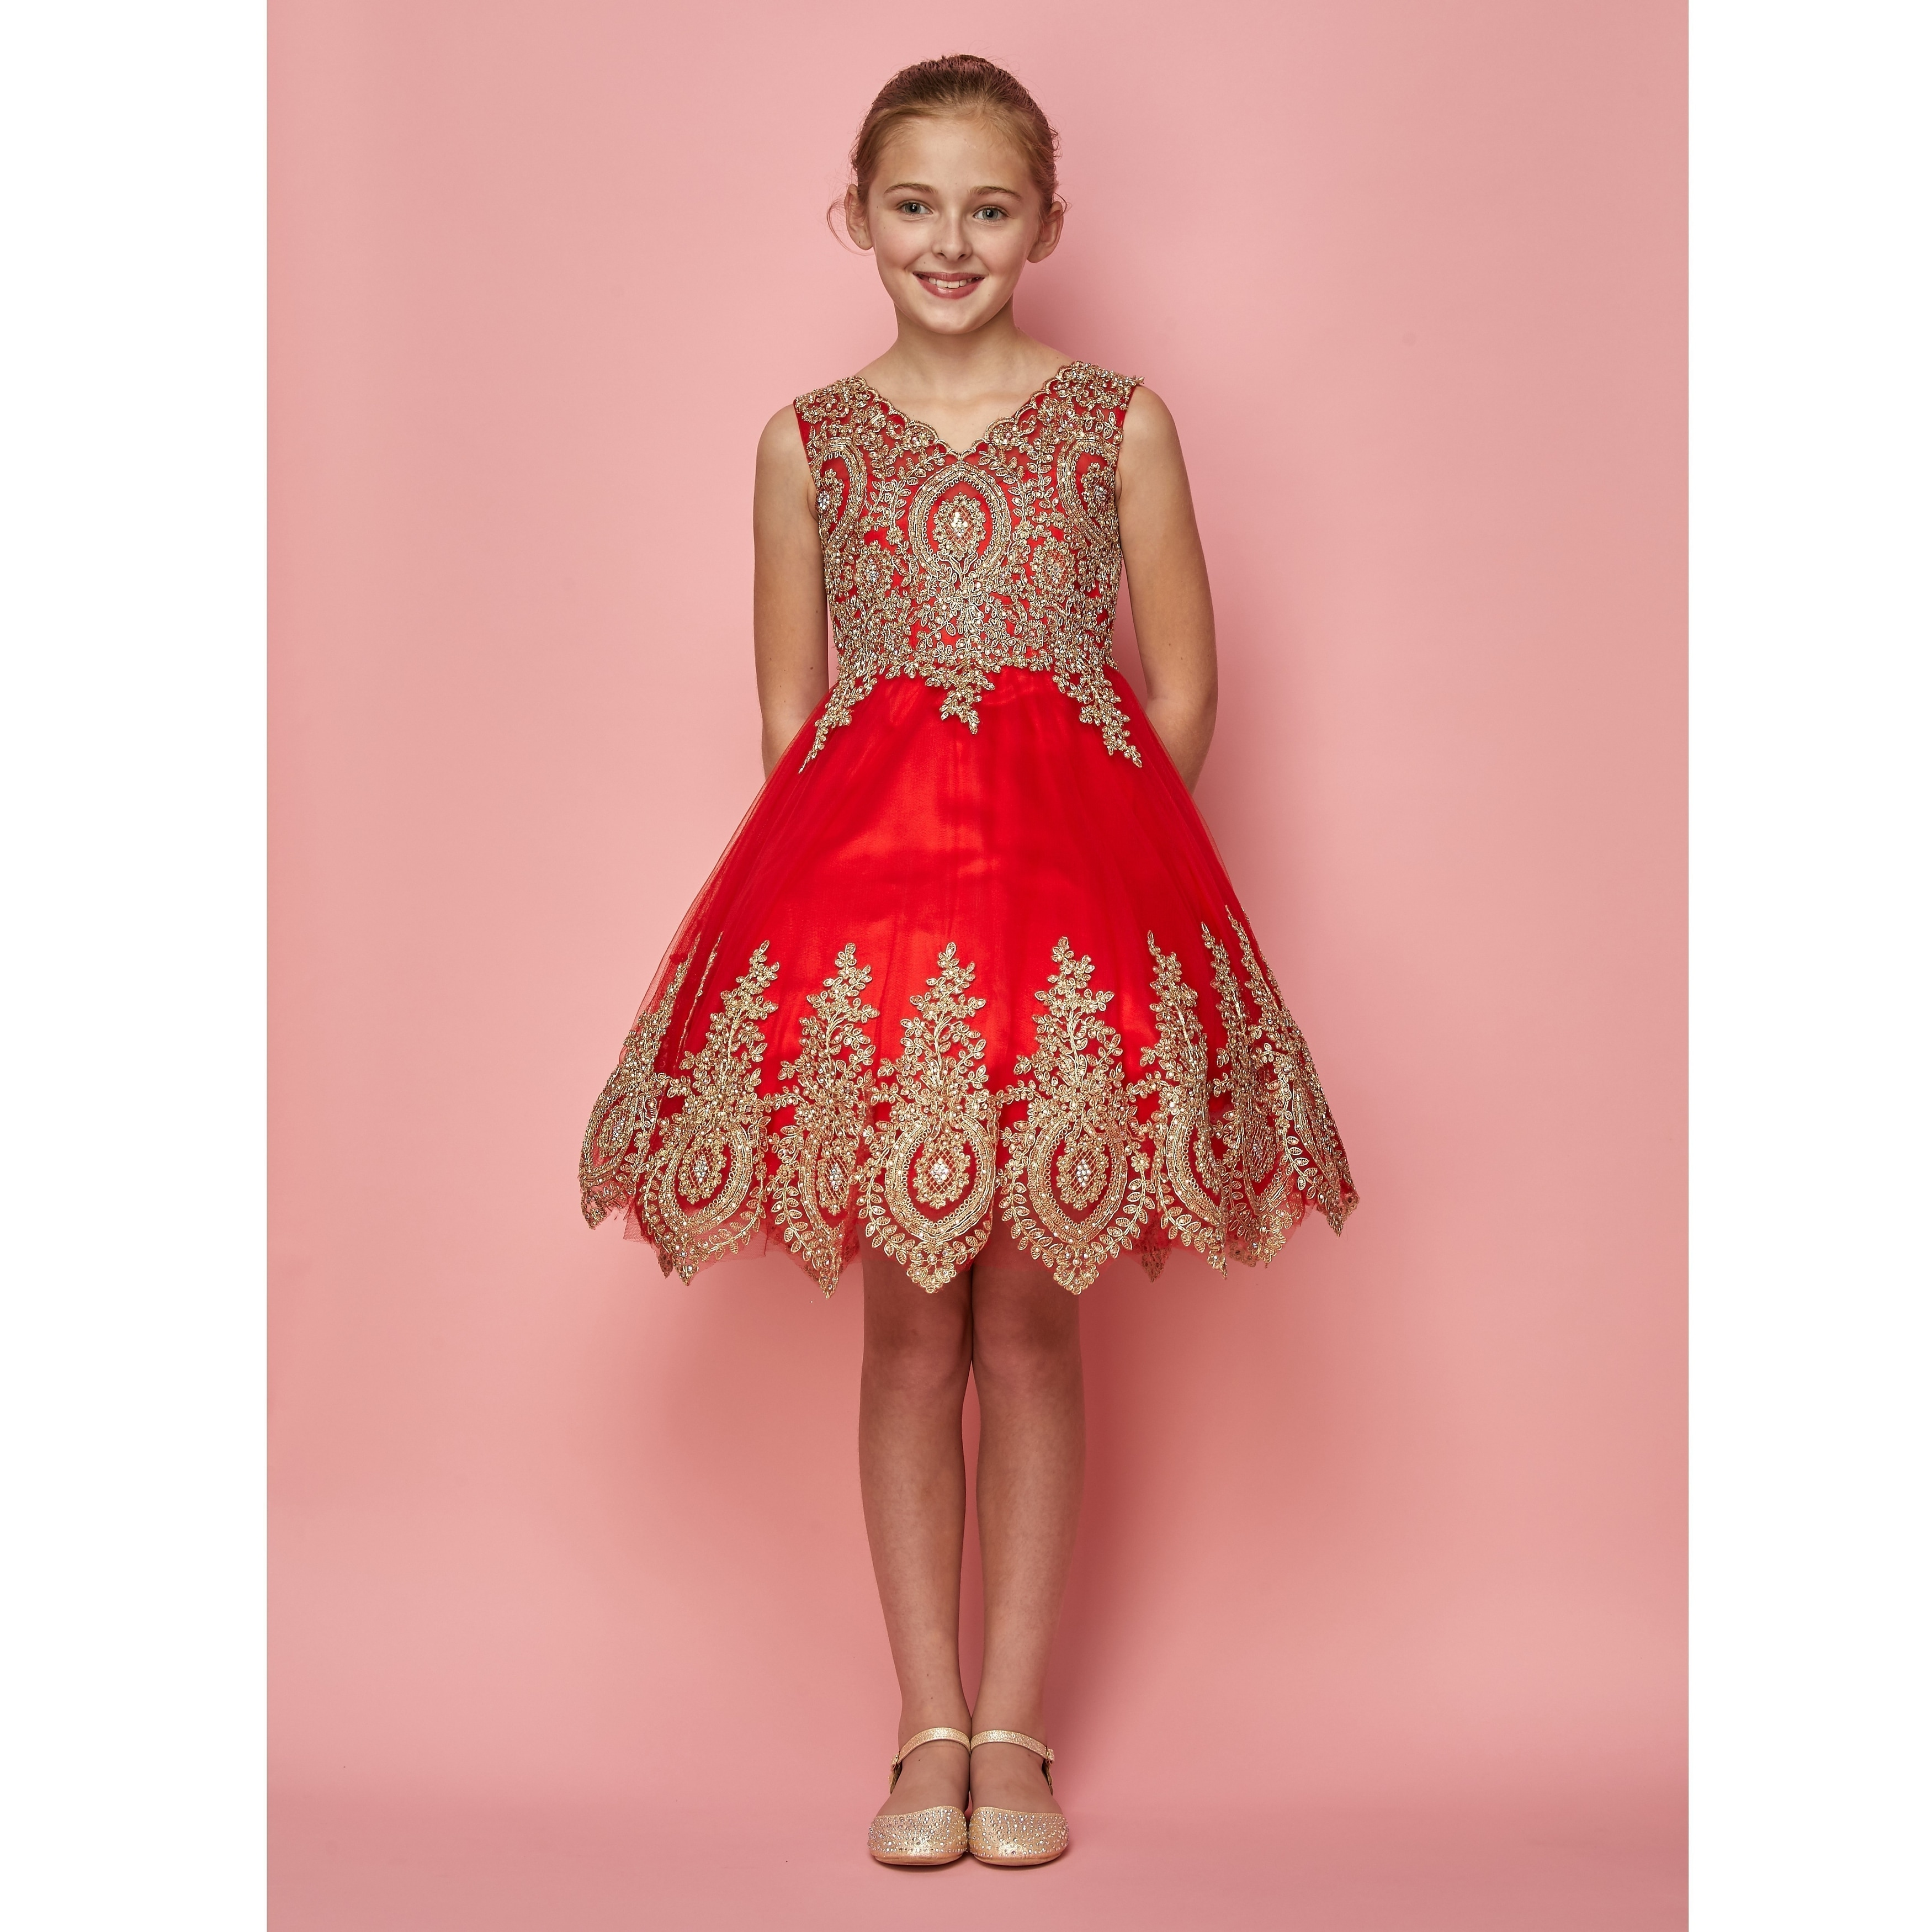 b2a32bb91 Shop Girls Red Gold Coiled Lace Mesh Elegant Junior Bridesmaid Dress 8-16 -  Free Shipping Today - Overstock - 18169690